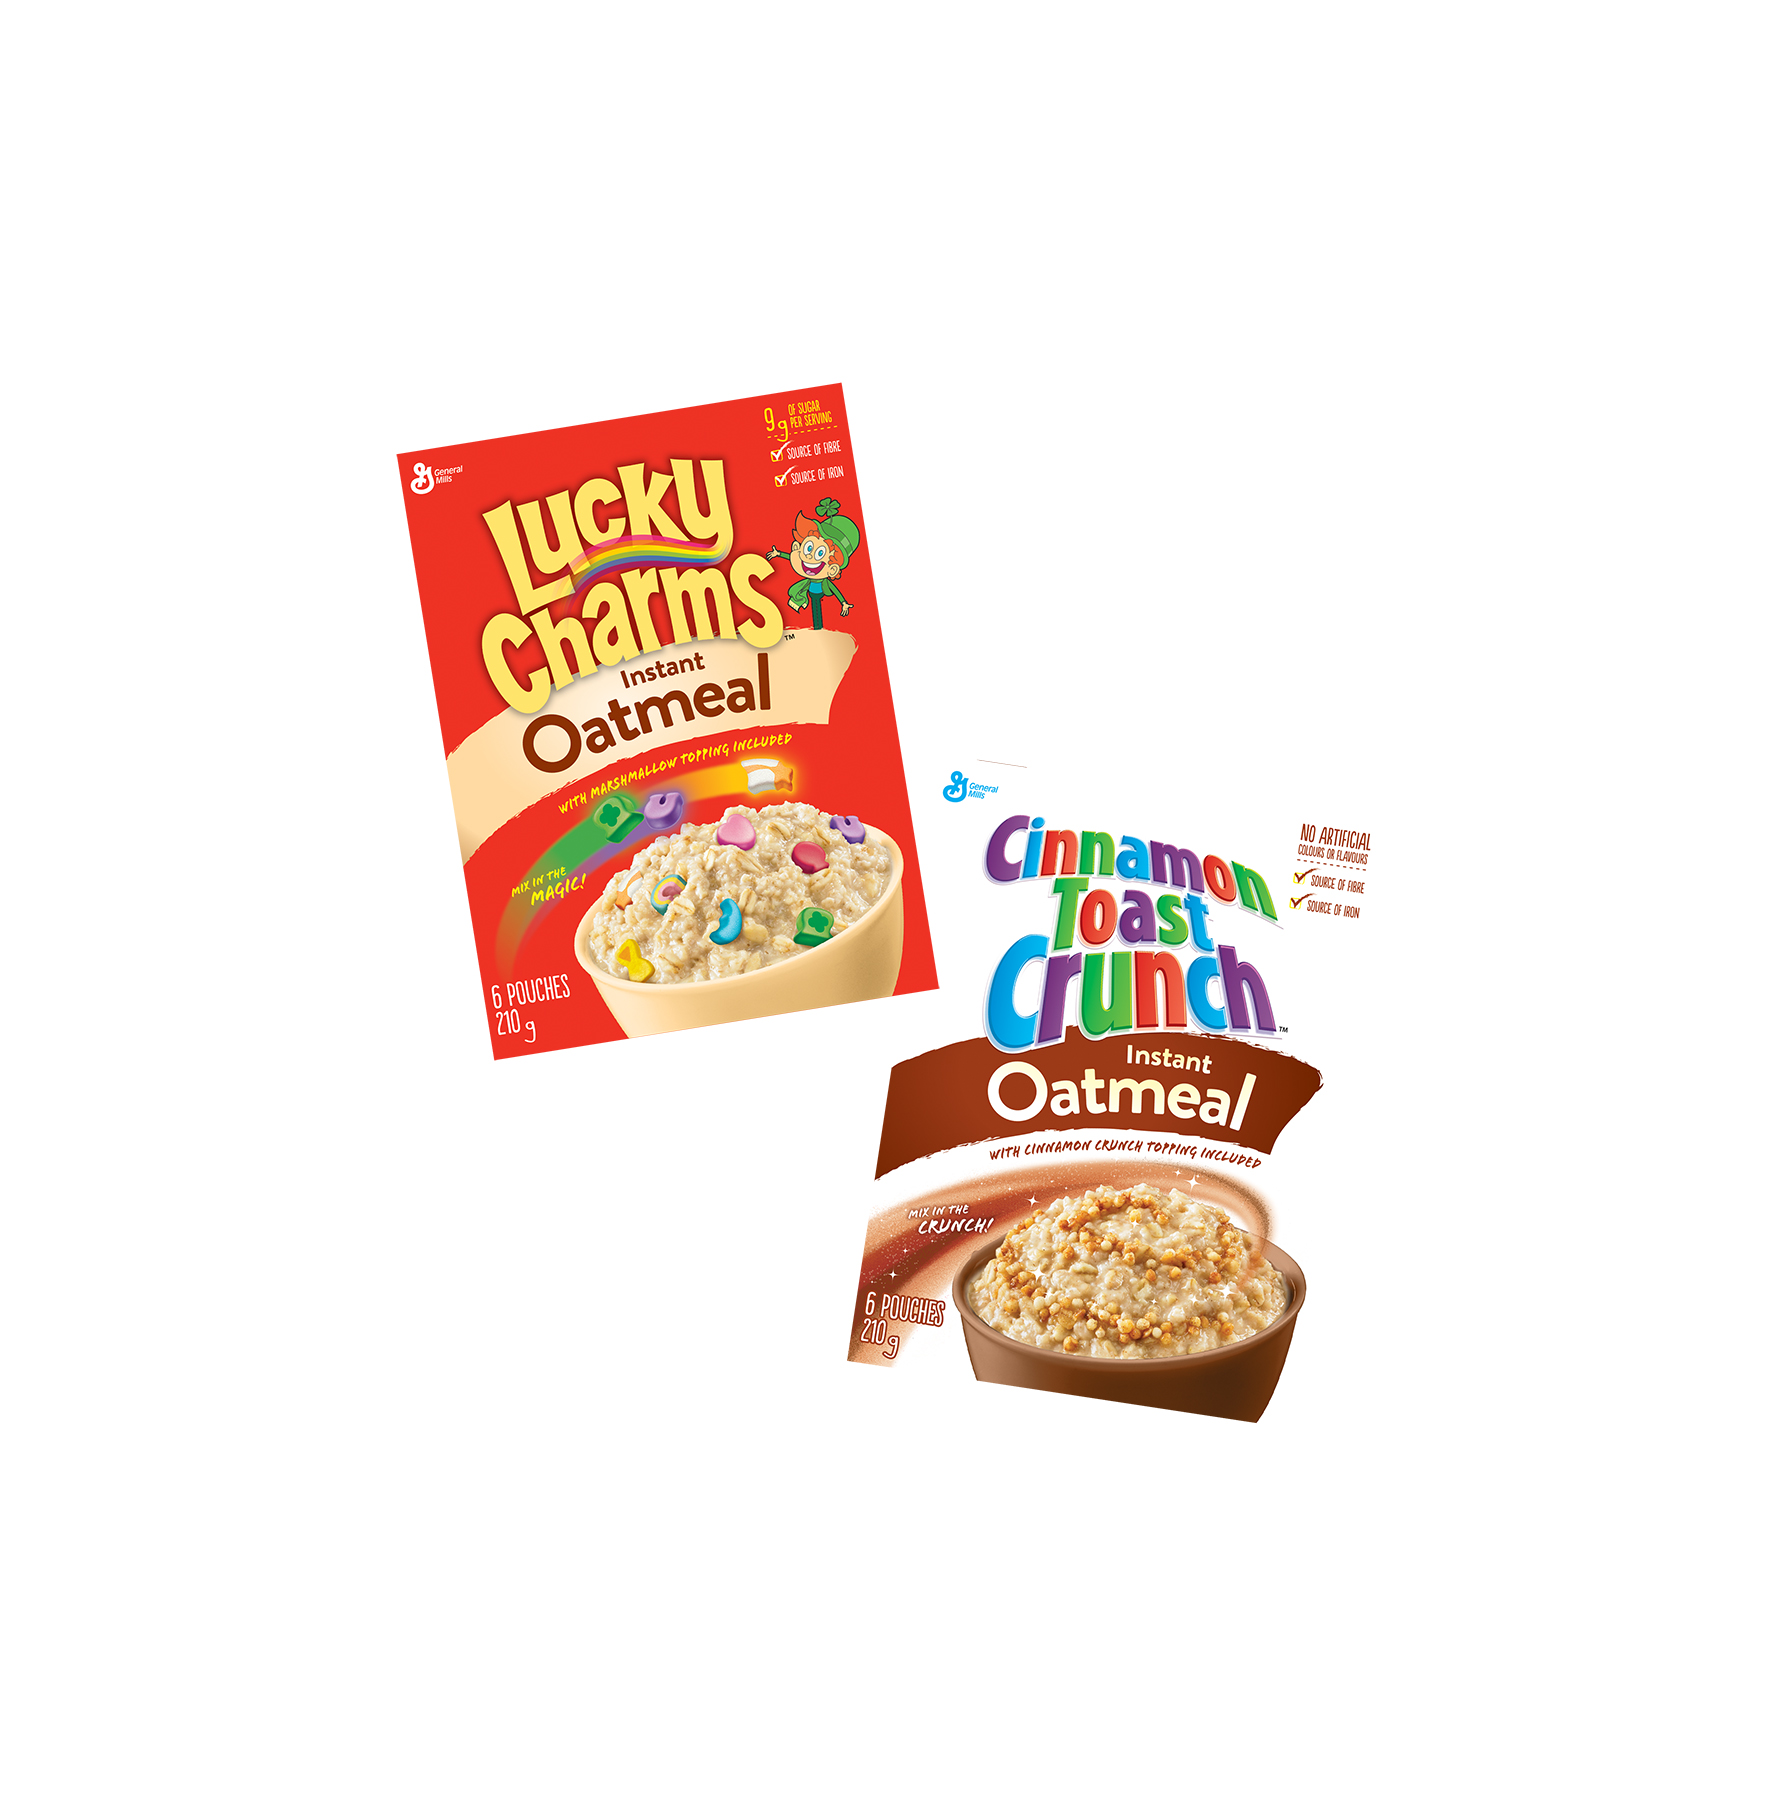 Lucky Charms and Cinnamon Toast Crunch Now Come in Oatmeal Form